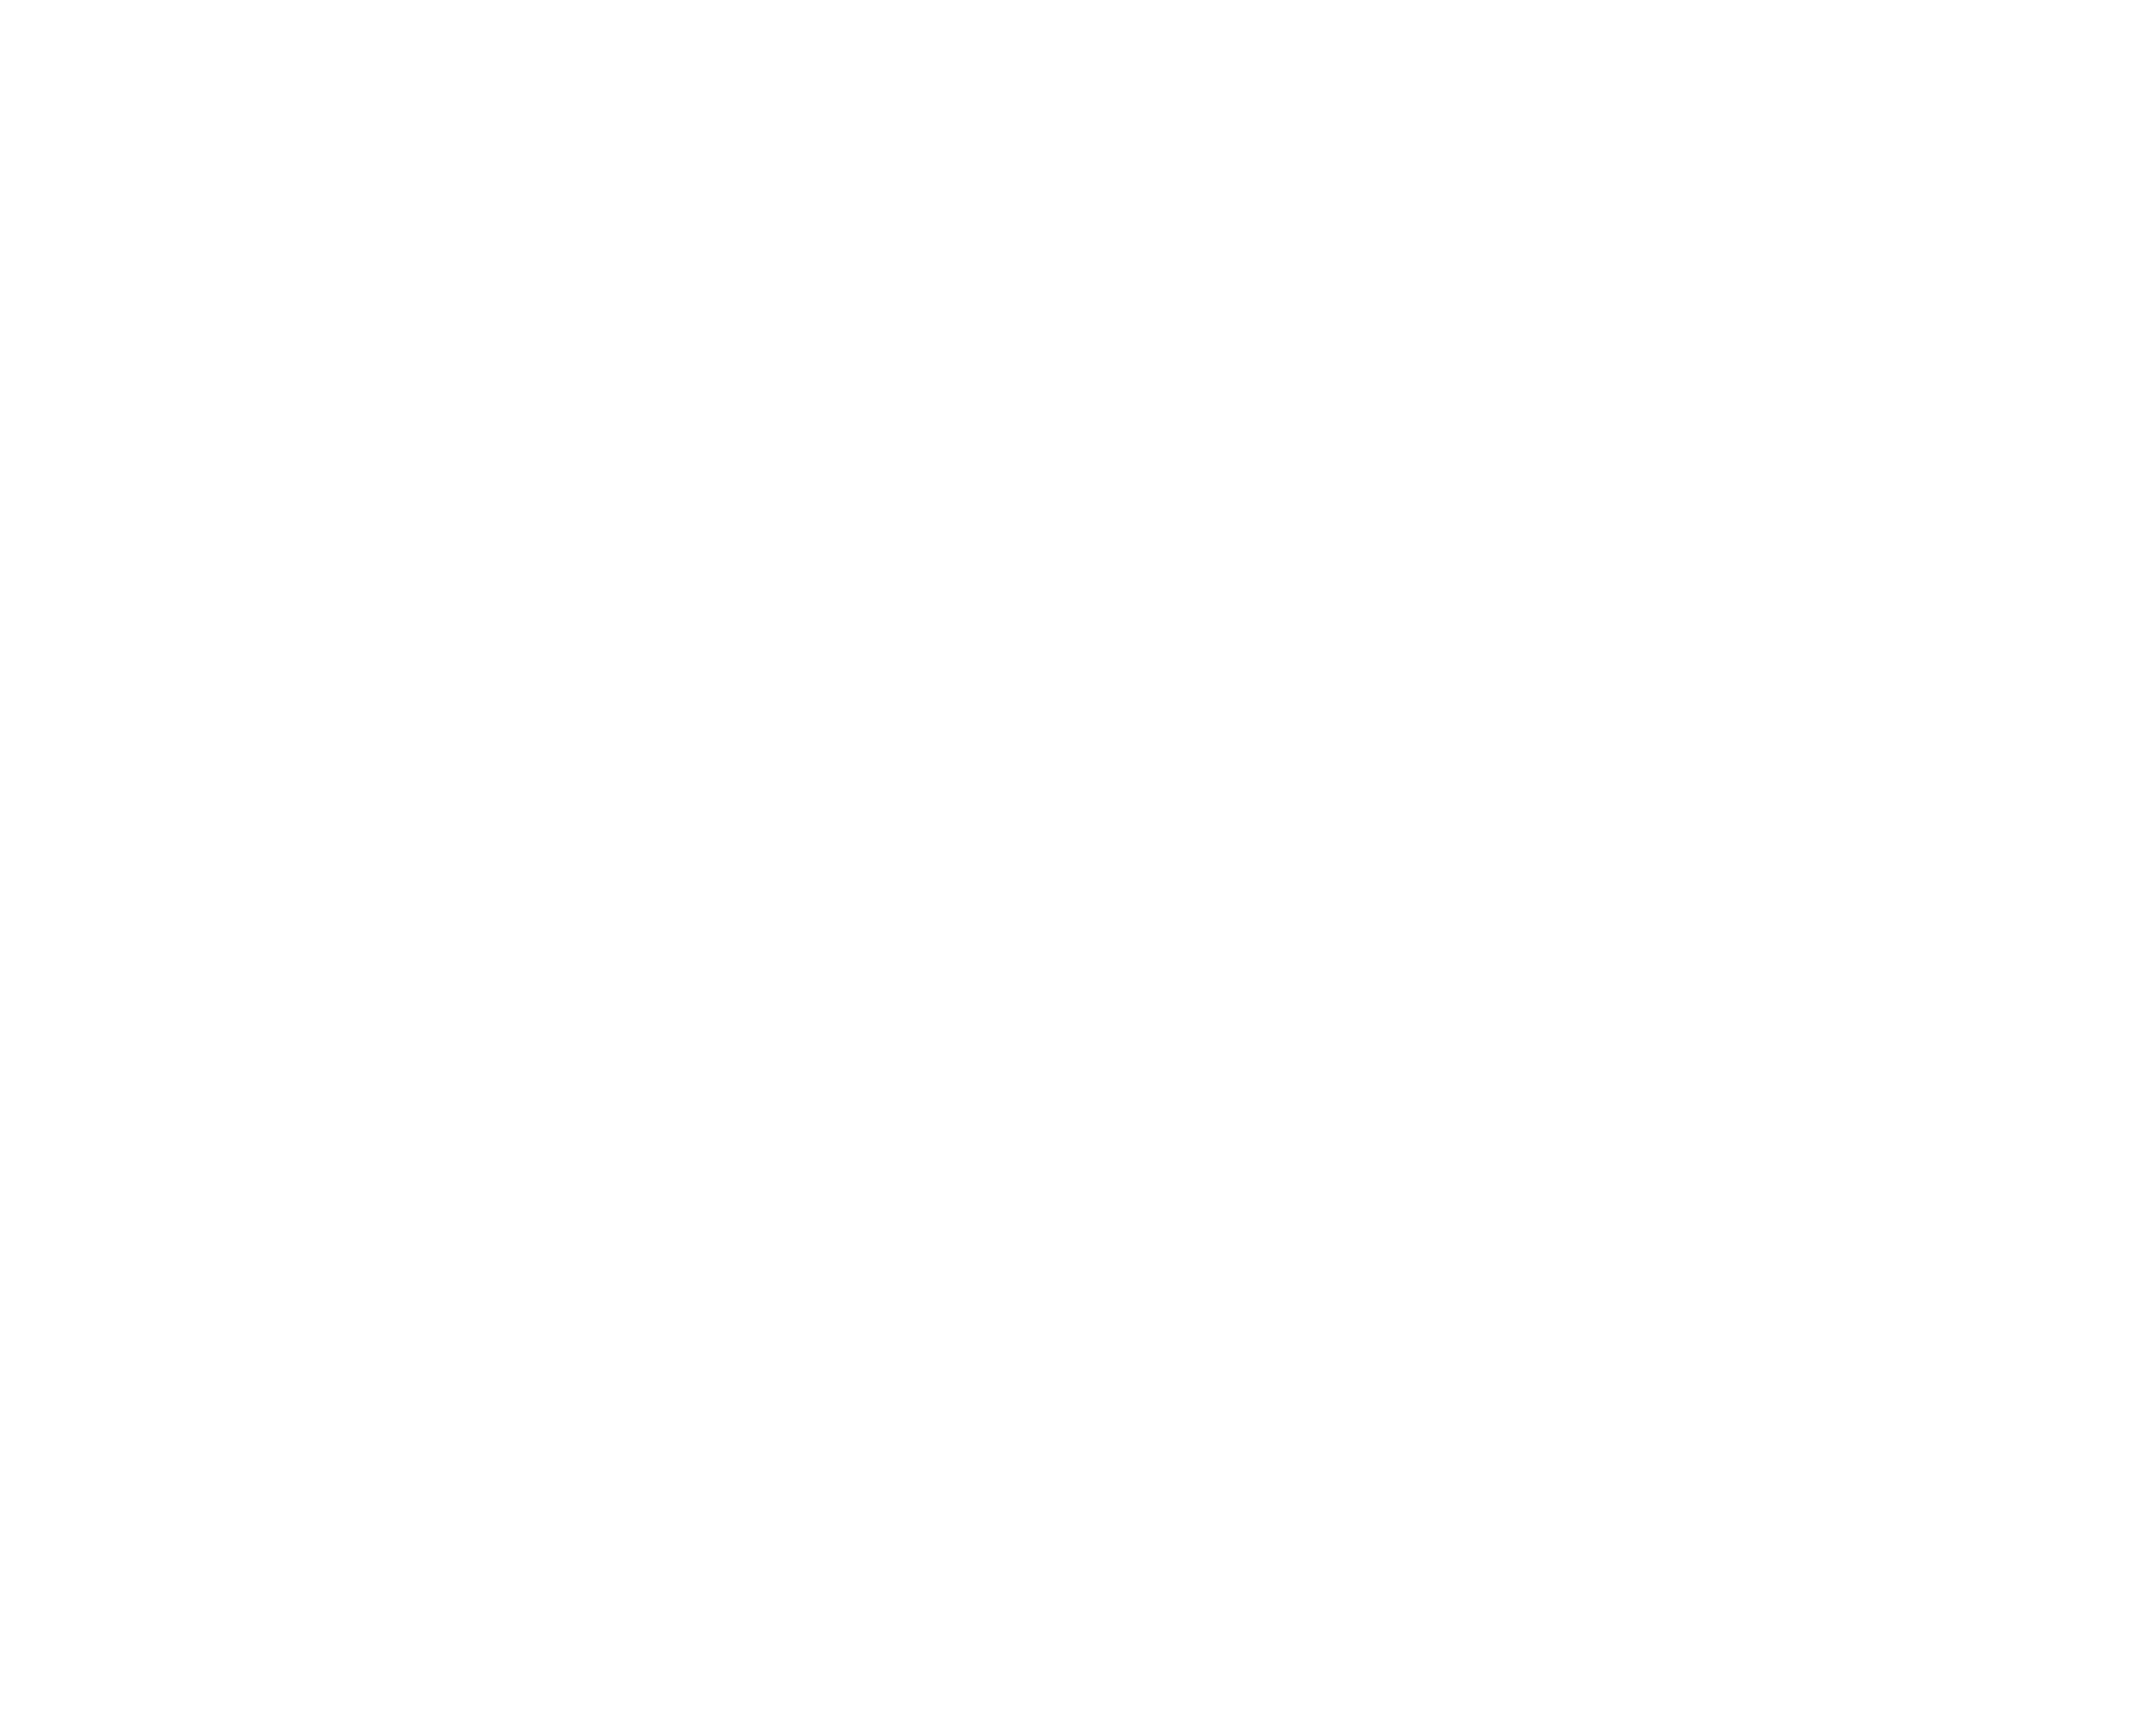 Trickers - Supporter of the Terra Carta